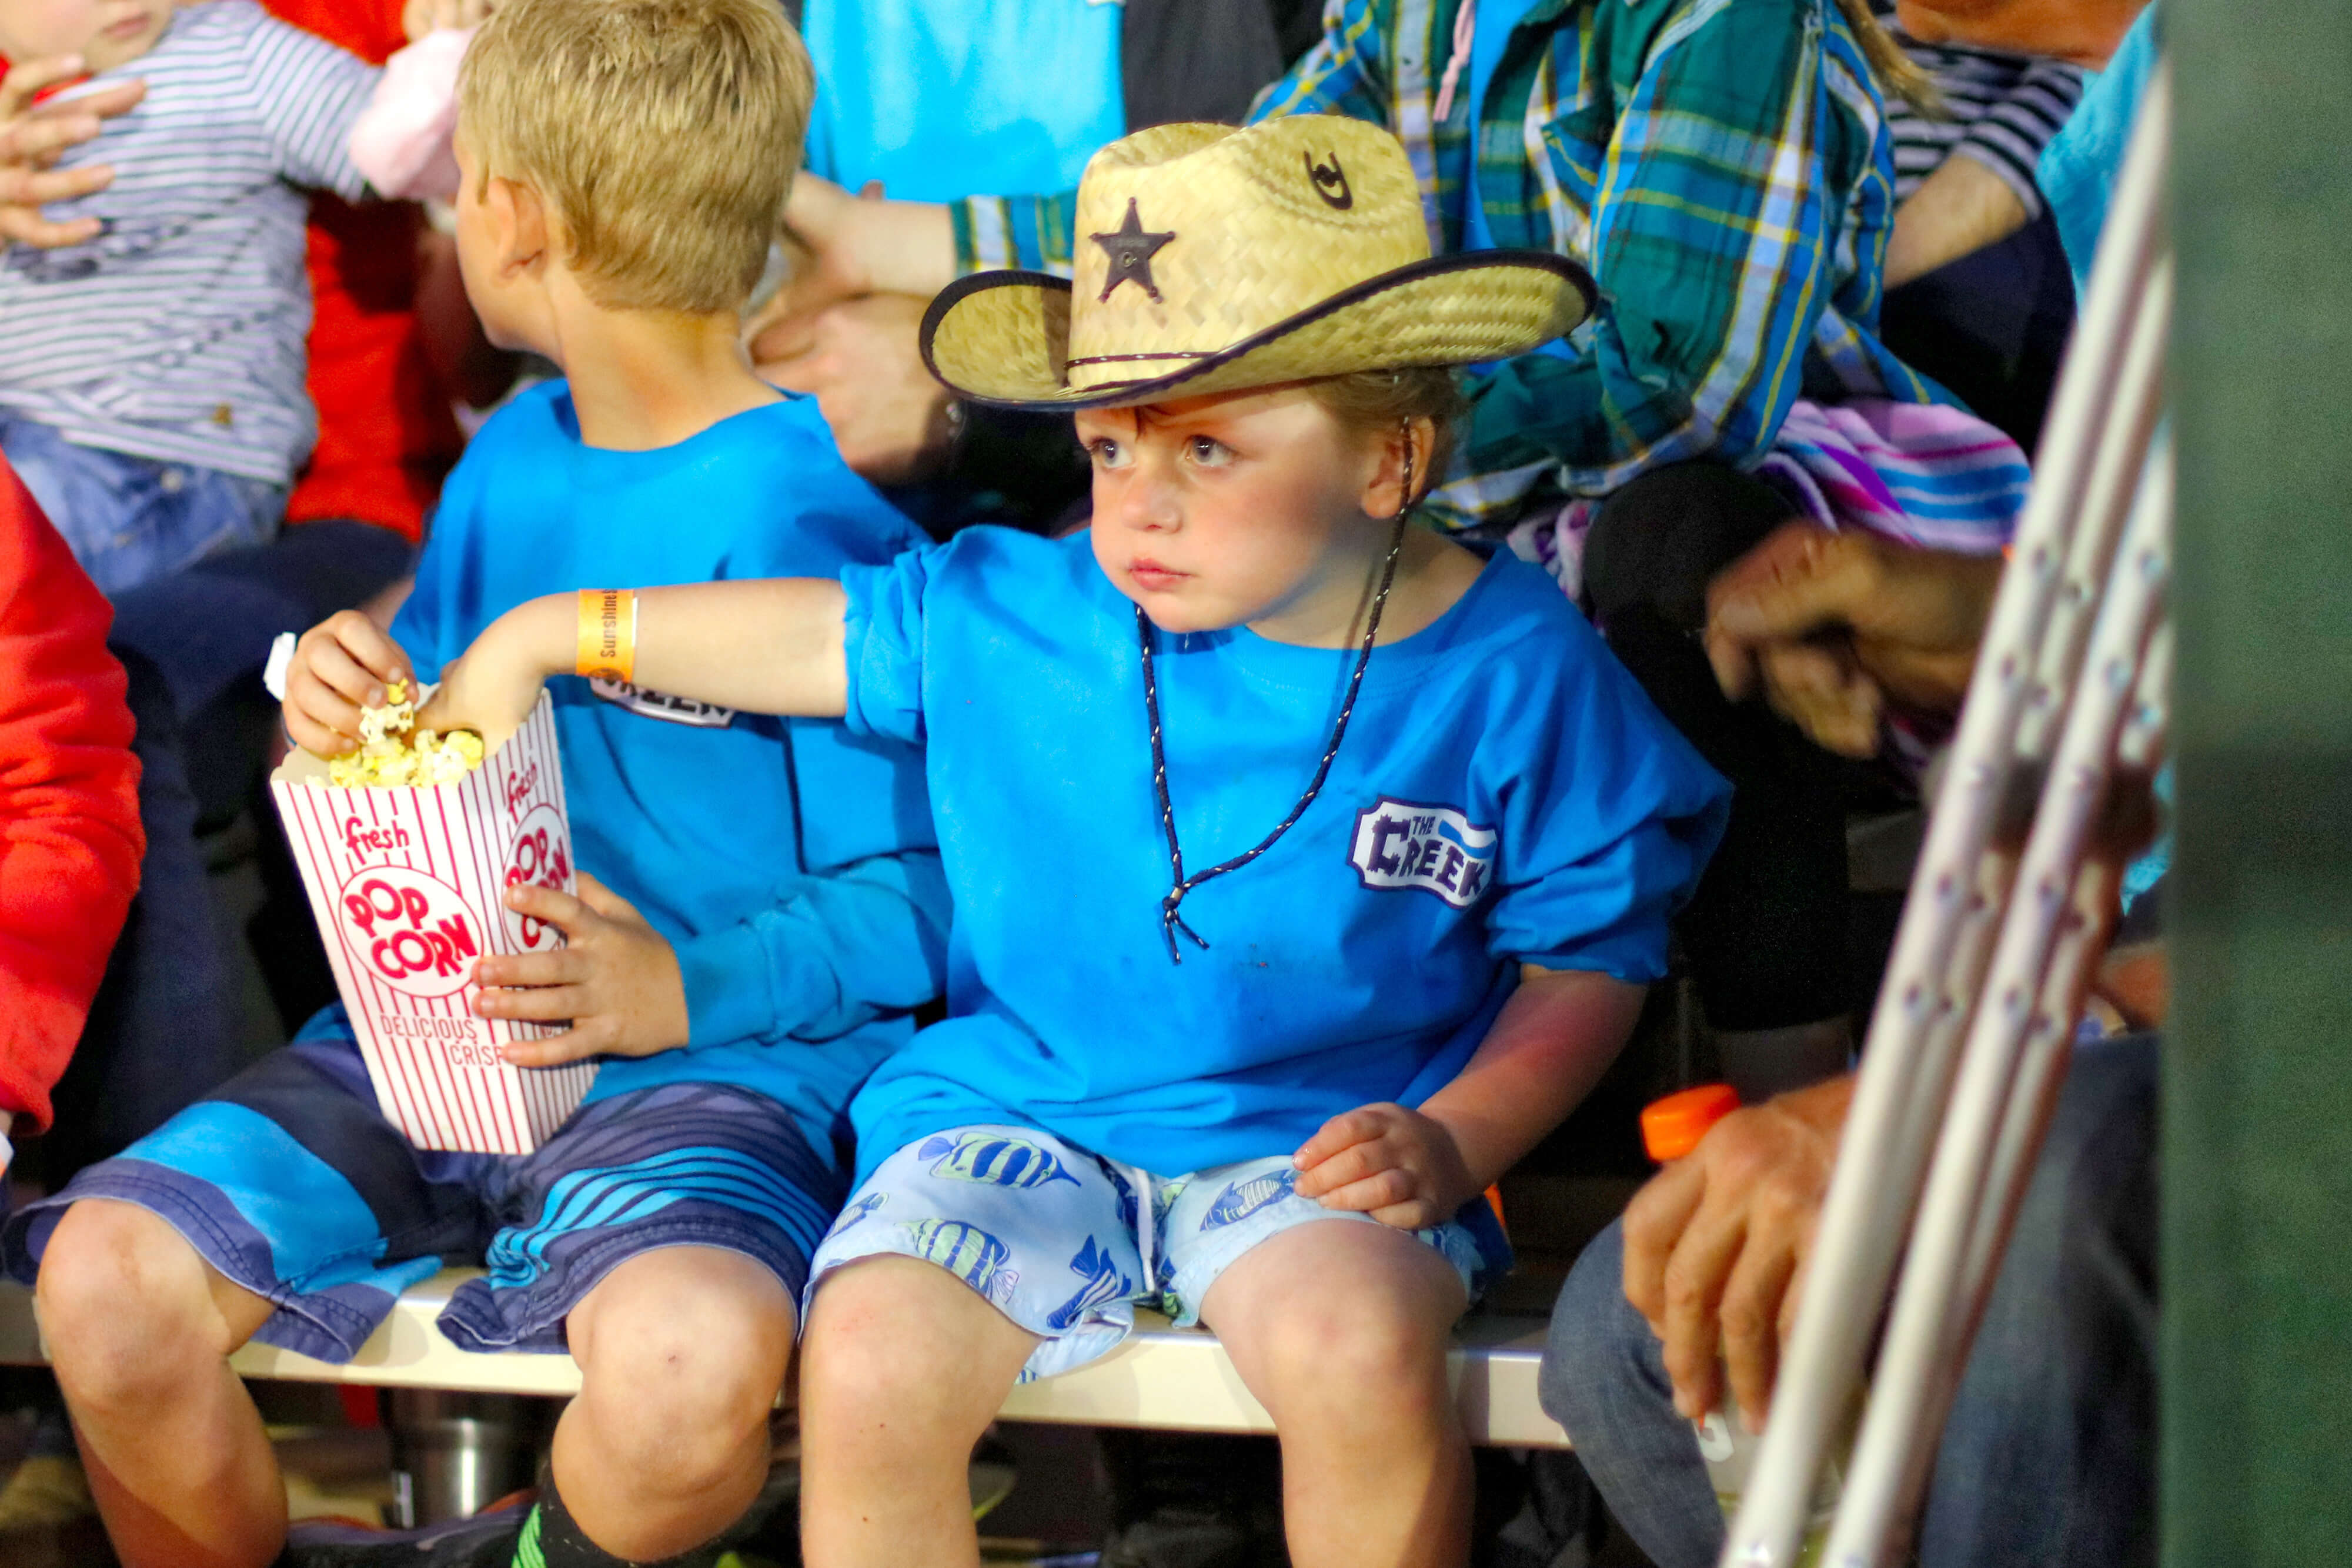 Family Rodeo in River Ranch, FL | Westgate River Ranch Resort & Rodeo | Westgate Resorts